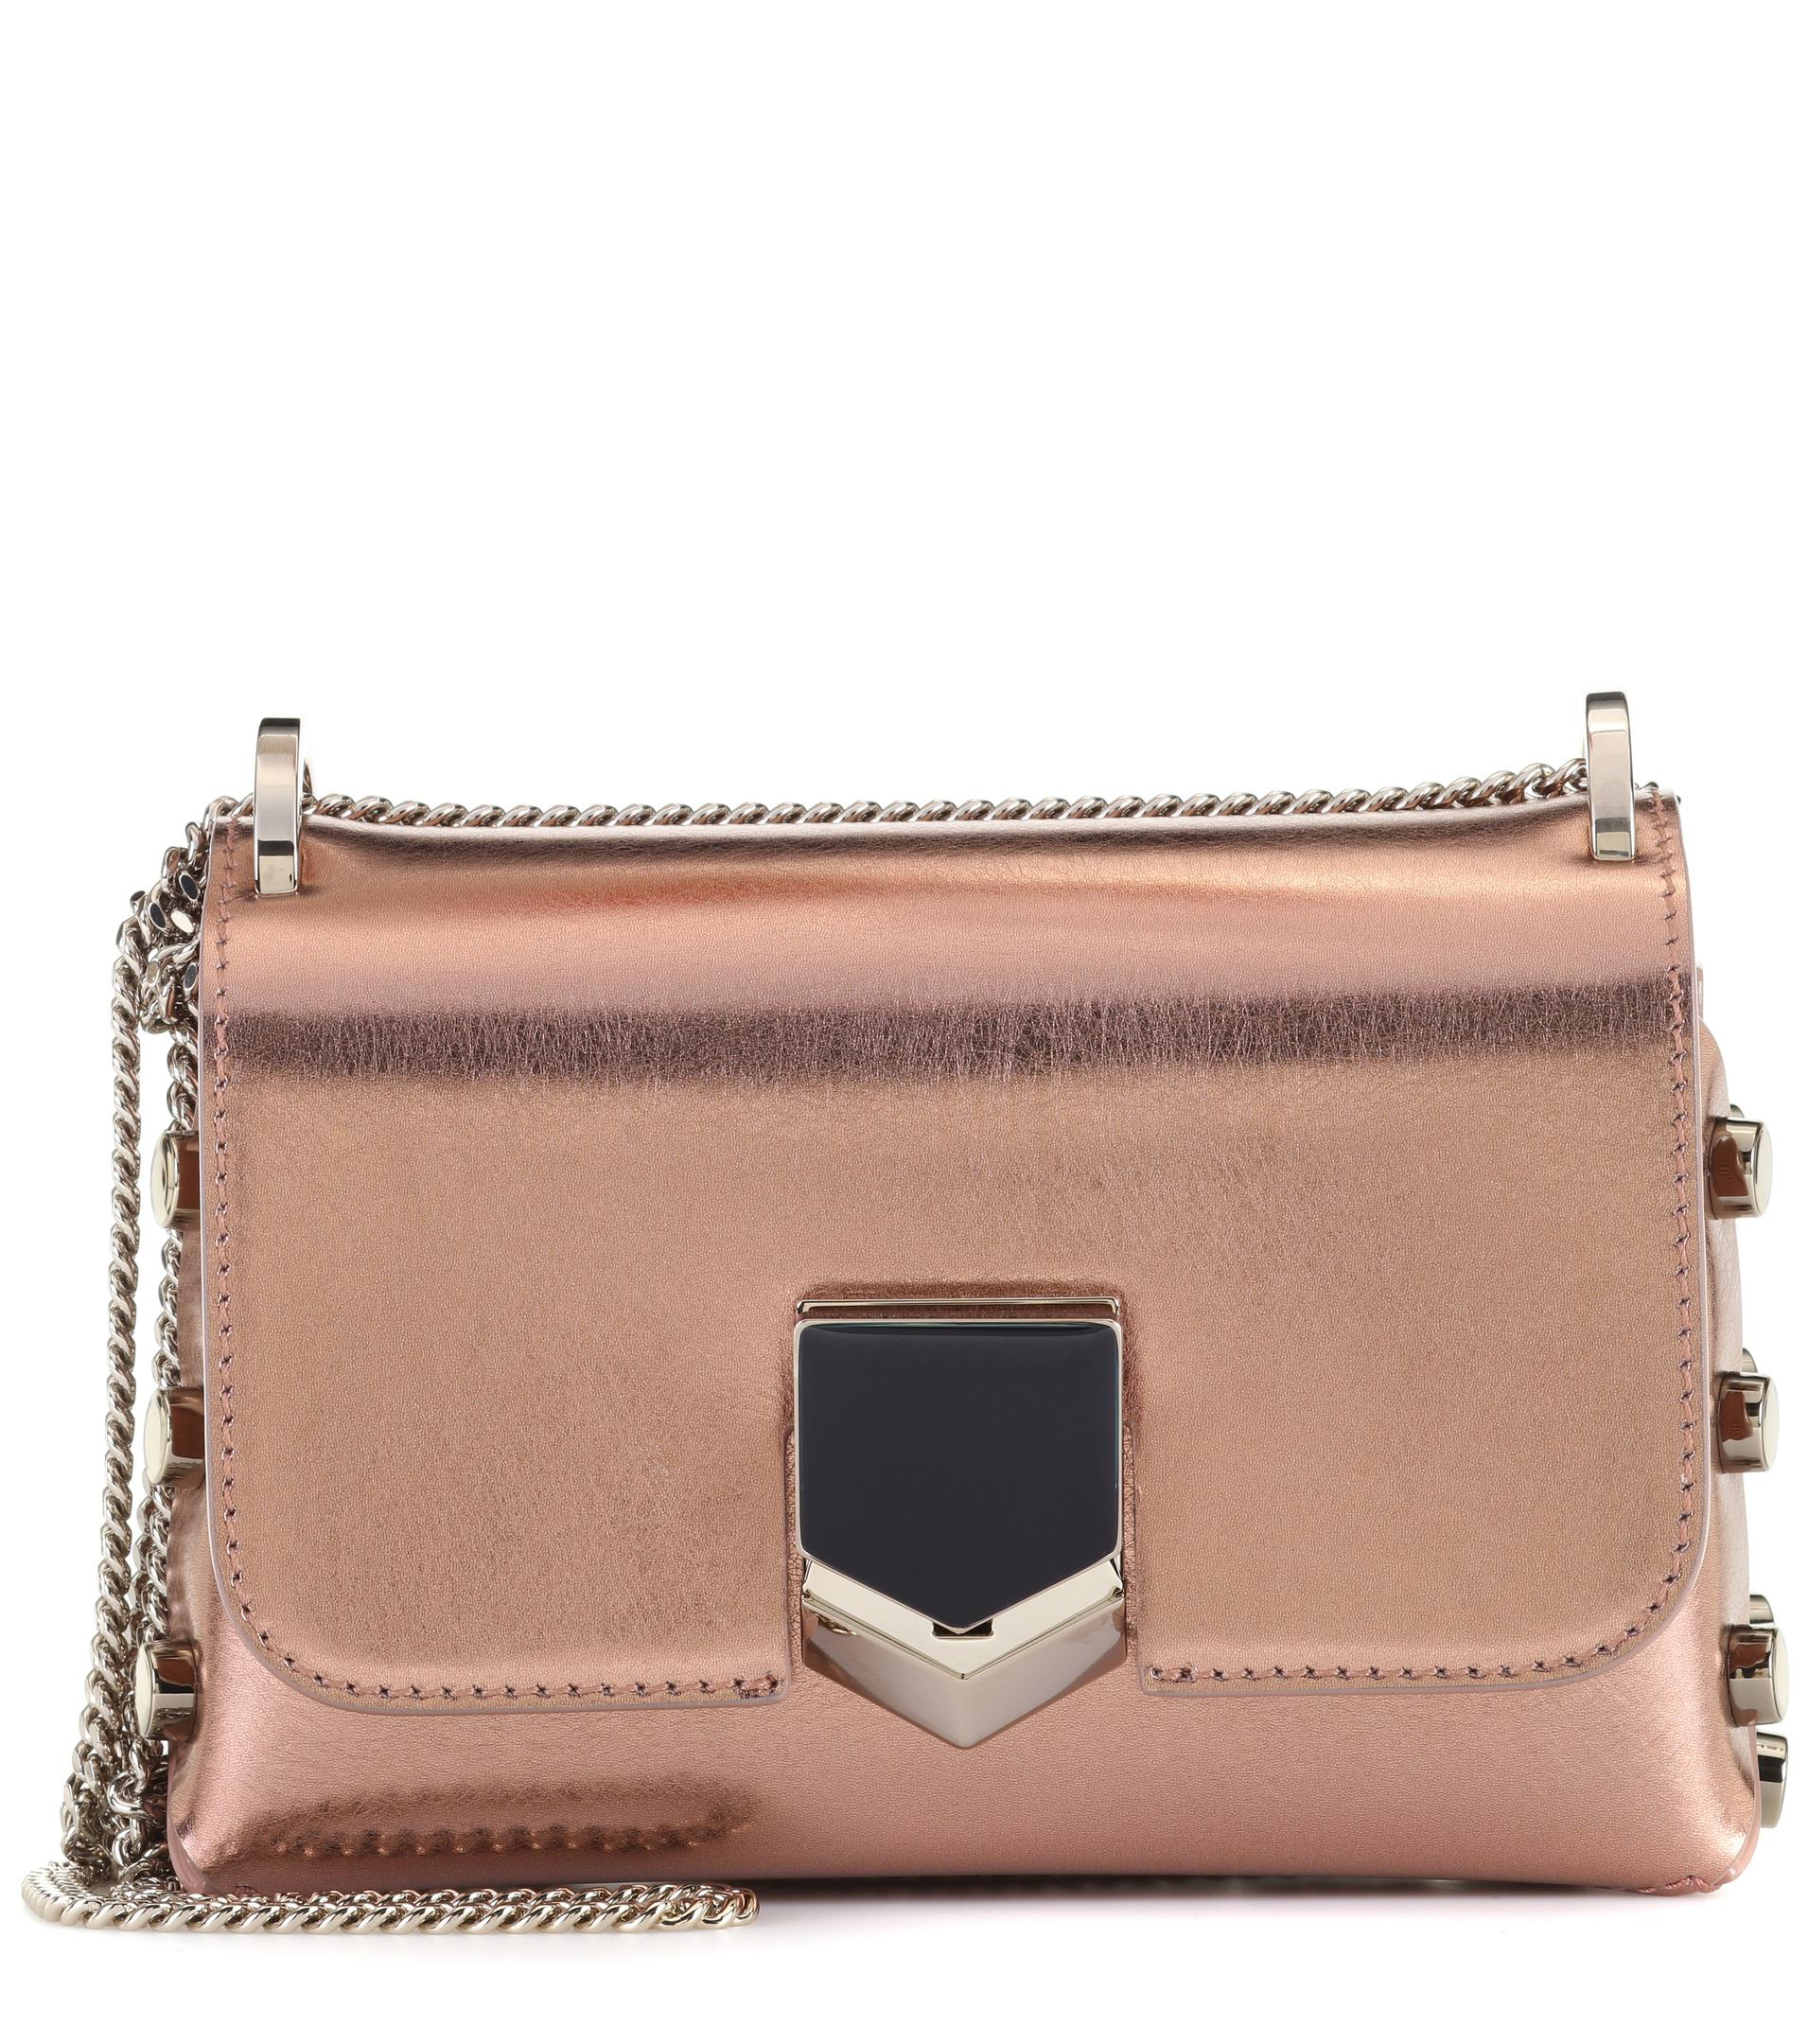 2493cbf8d44b Jimmy Choo Lockett Mini Leather Shoulder Bag in Metallic - Lyst